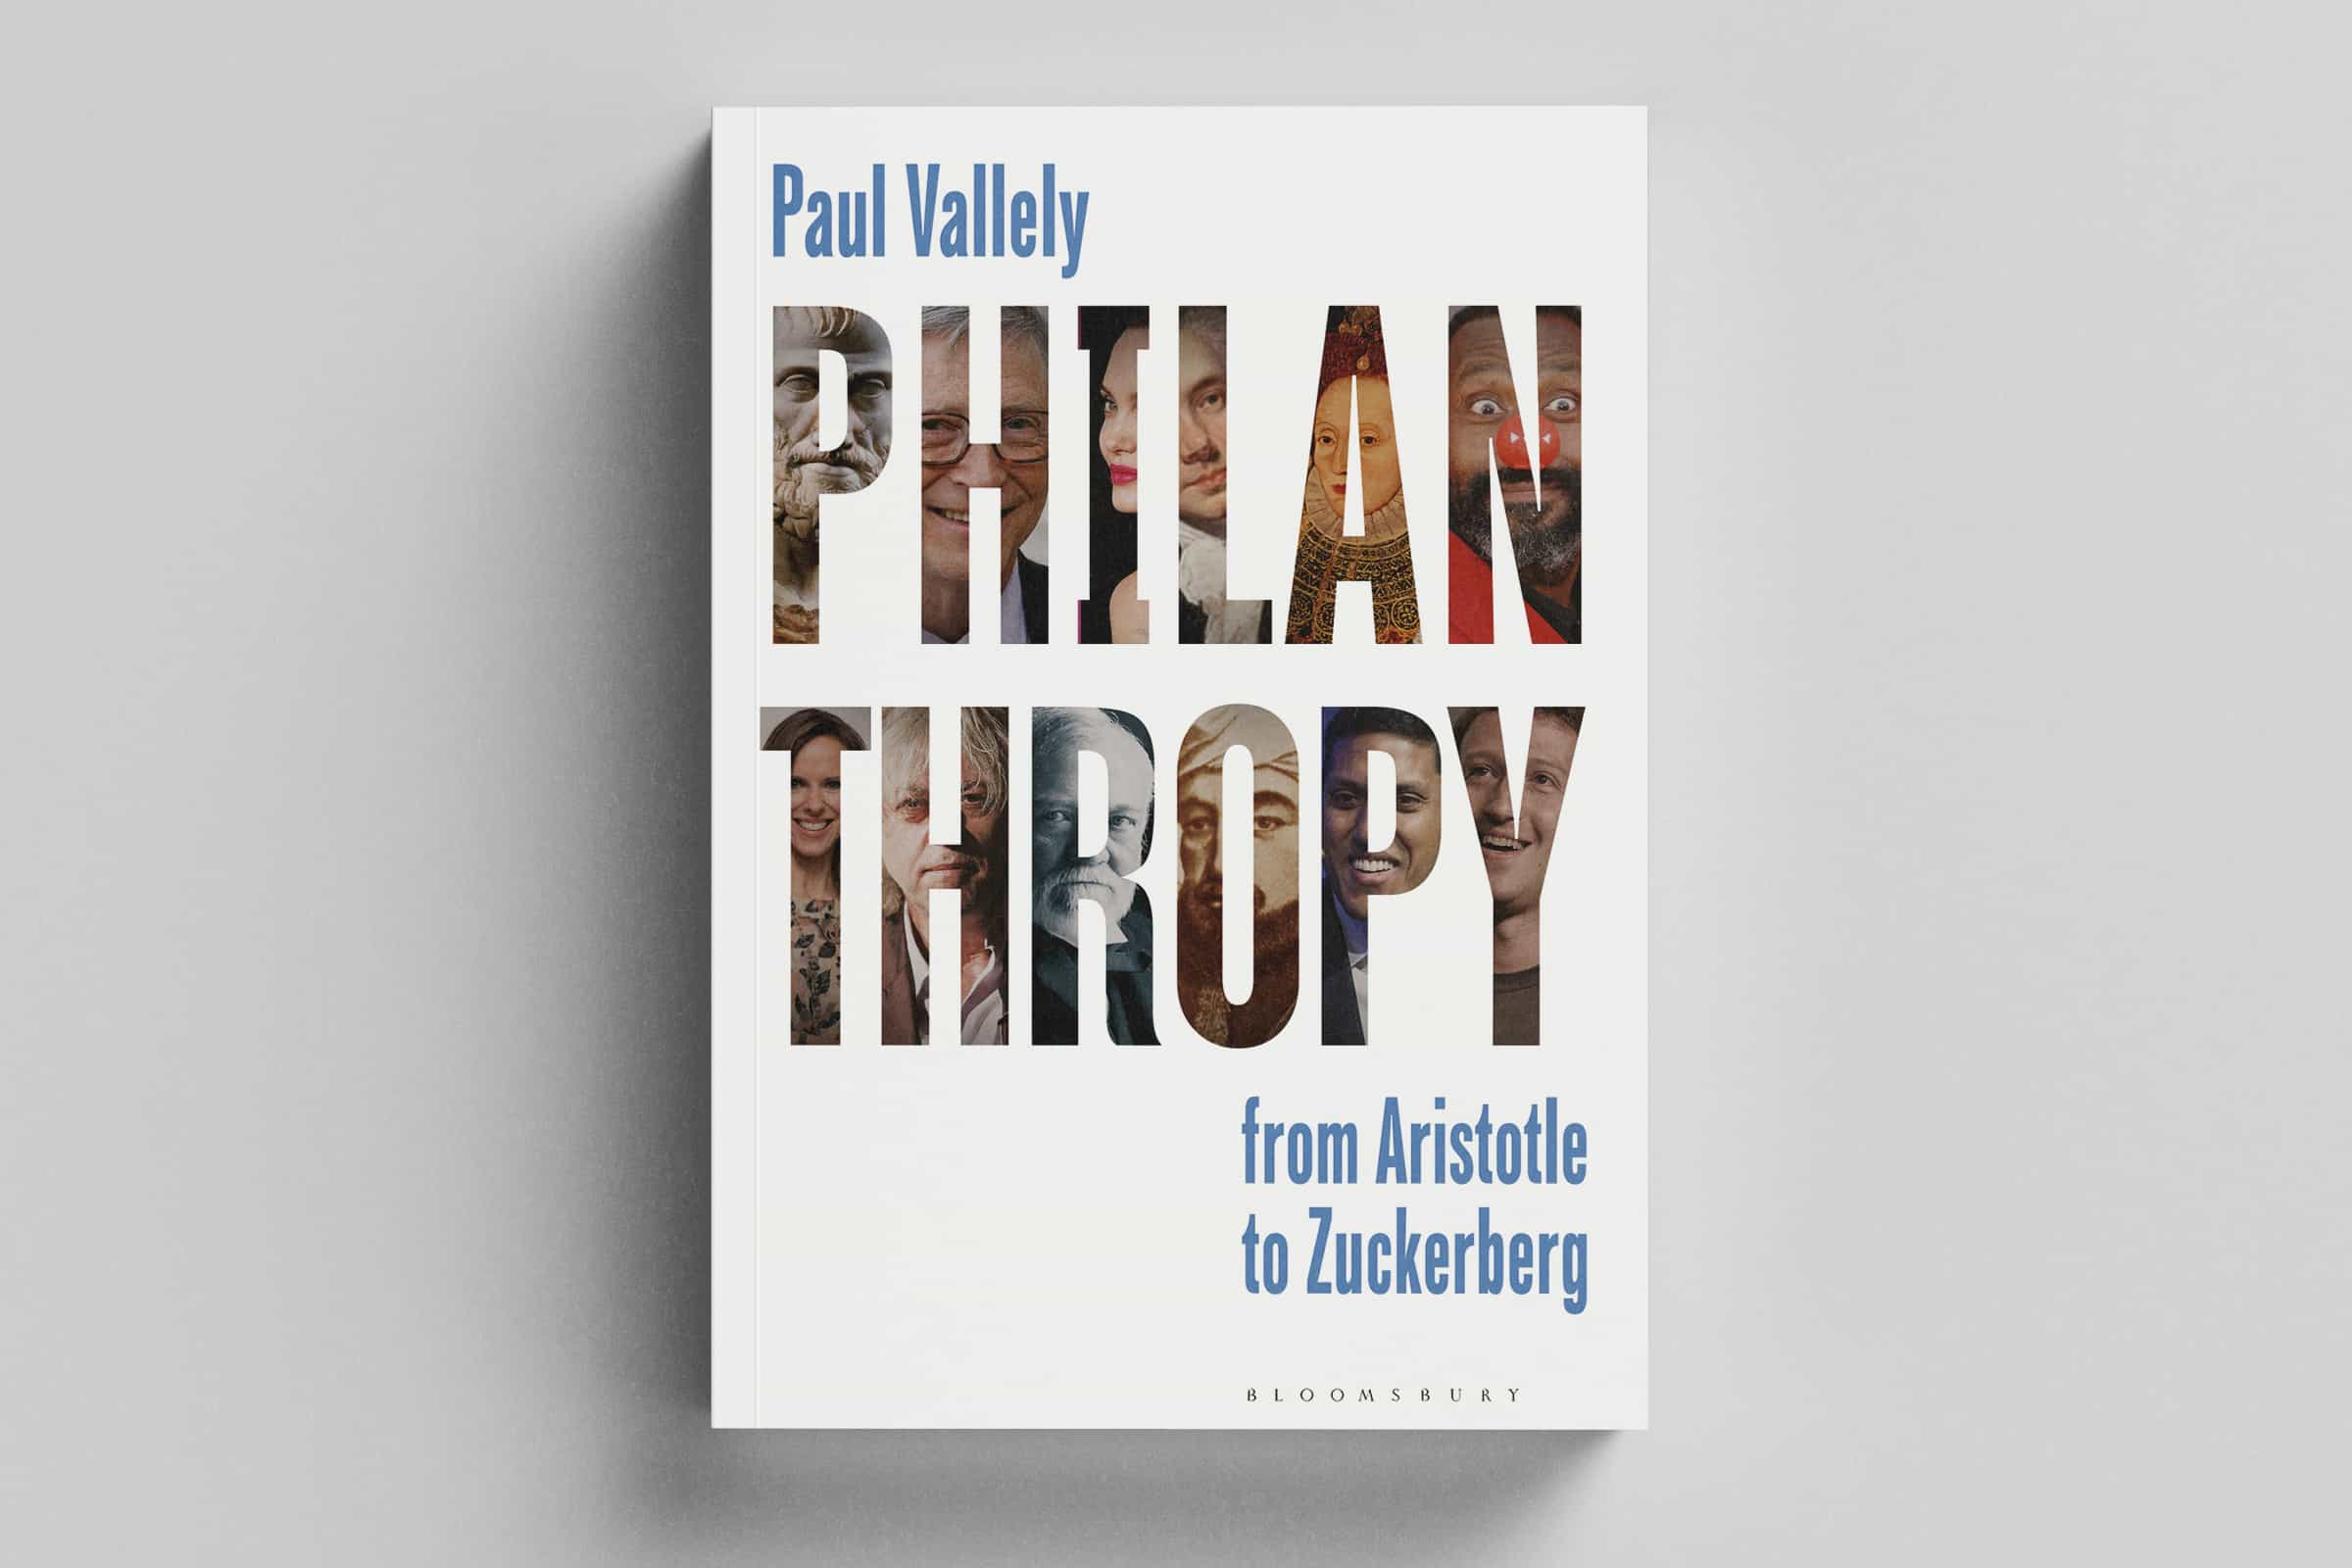 Book cover of Philanthropy: from Aristotle to Zuckerberg.